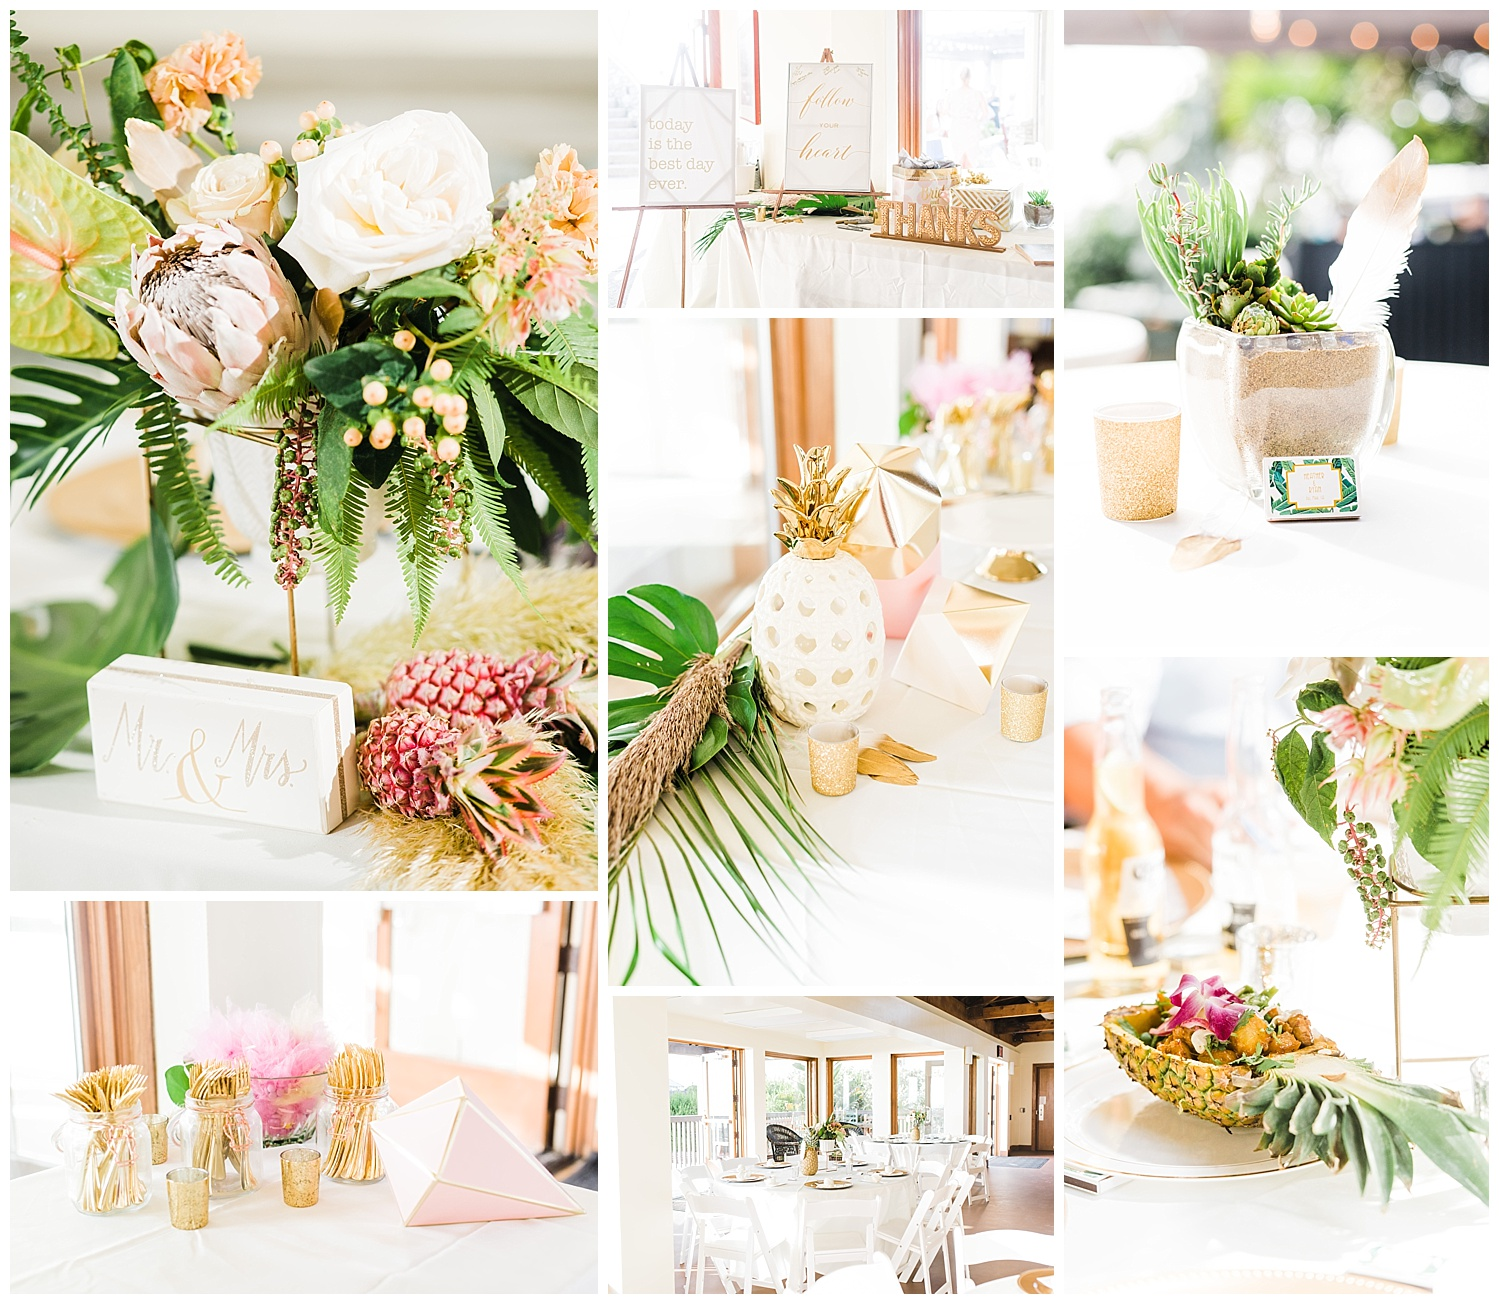 The decor at their wedding was AH-mazing!